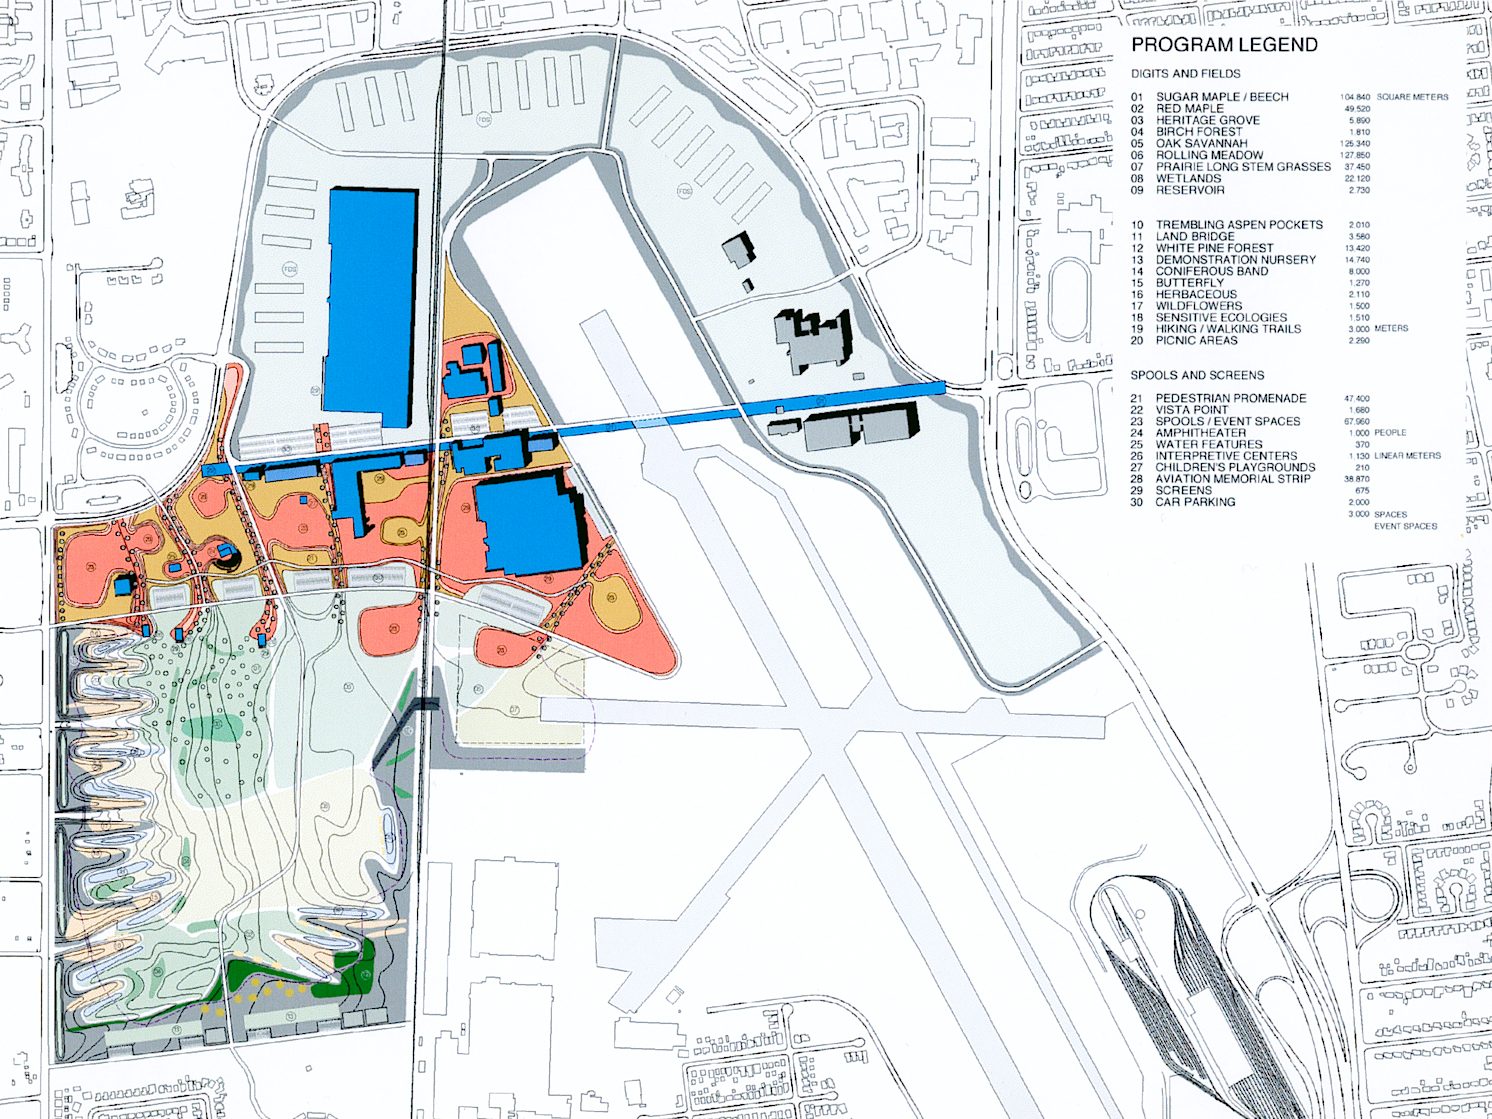 Downsview Plan view _01.1.jpg